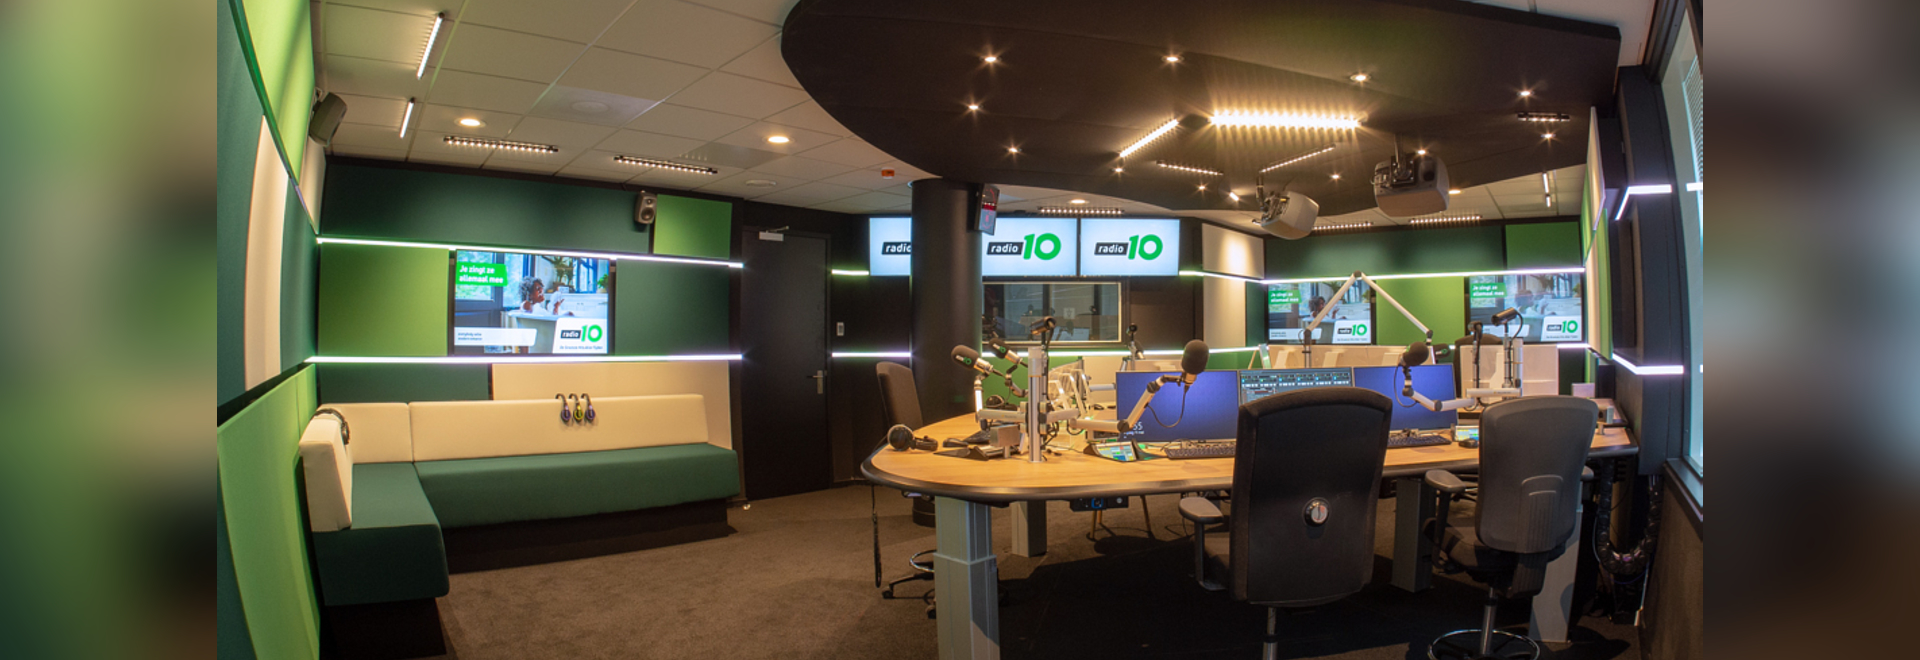 Radio 10,The Netherlands - Bijsterhuizen 2523,6604 LM Wijchen,Netherlands - CLS LED